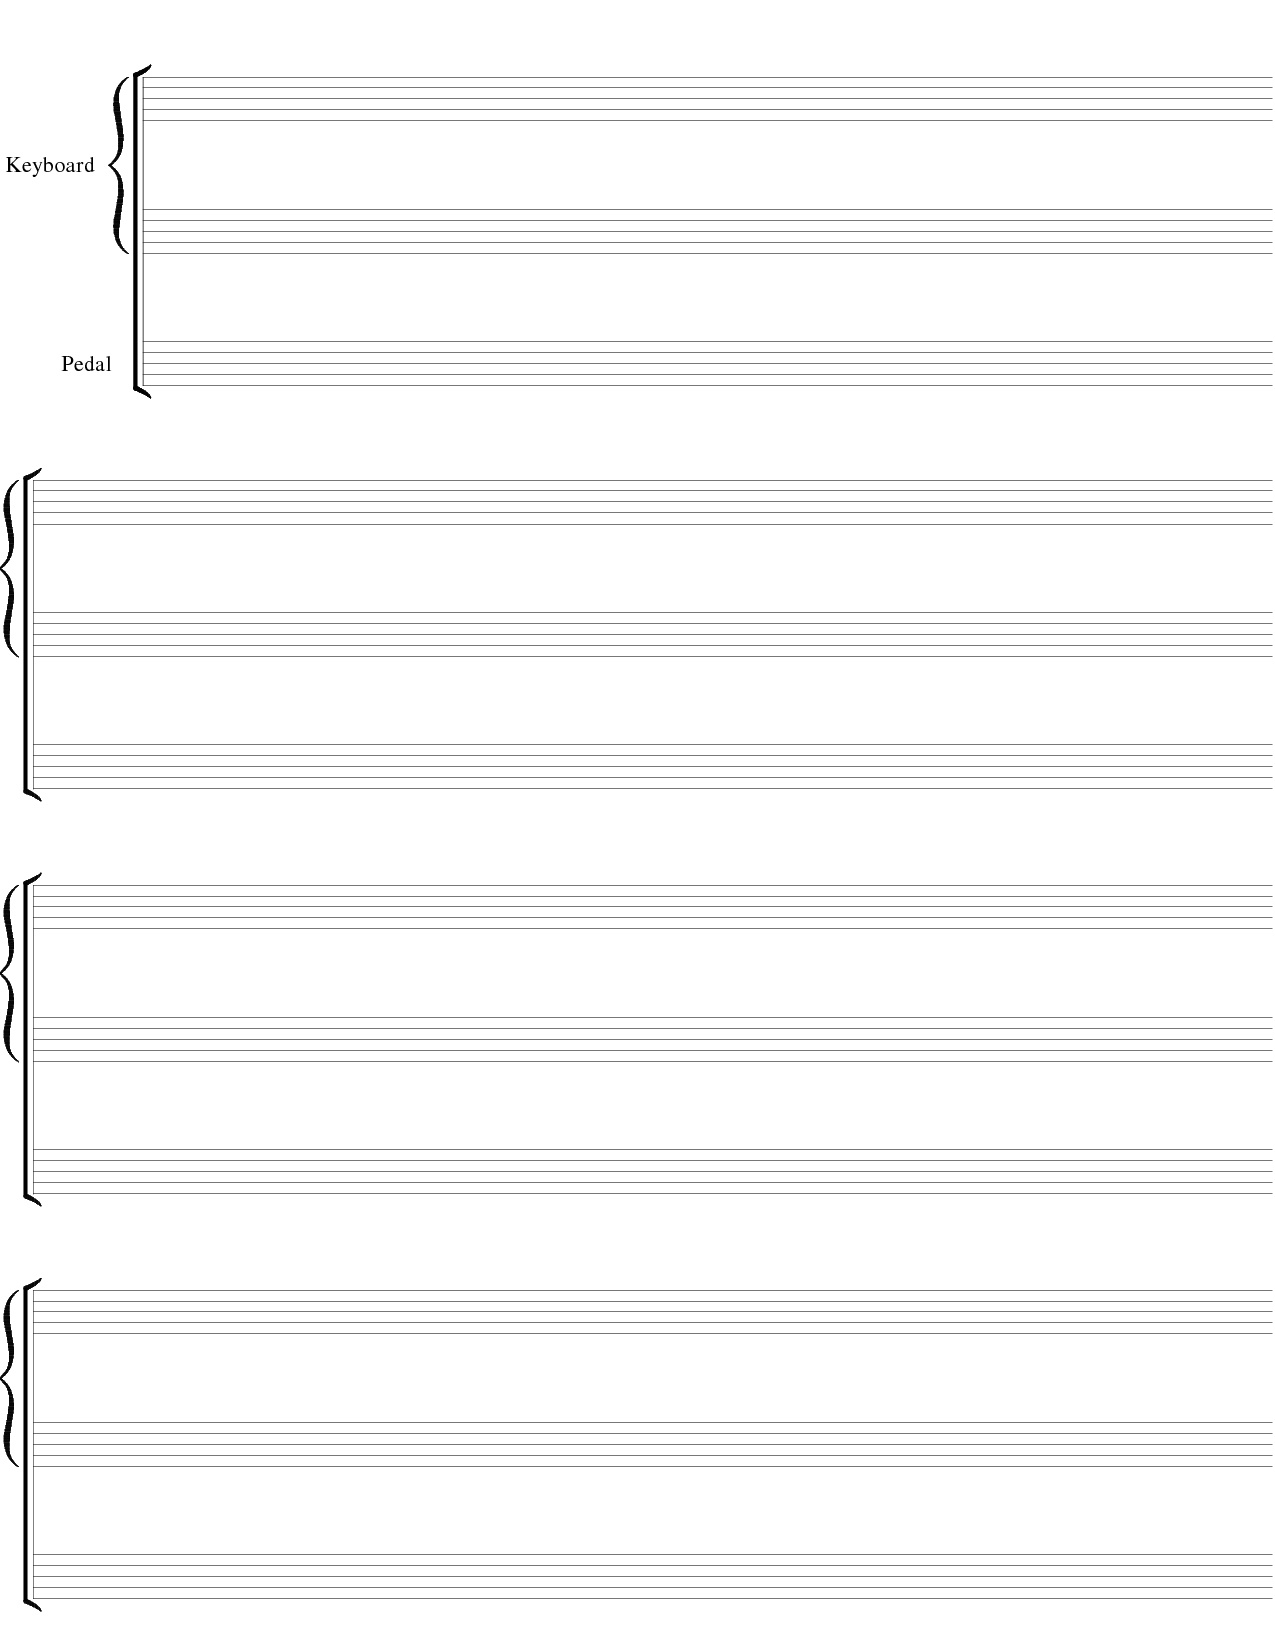 Blank Sheet Music Png & Free Blank Sheet Music Transparent - Free Printable Blank Music Staff Paper